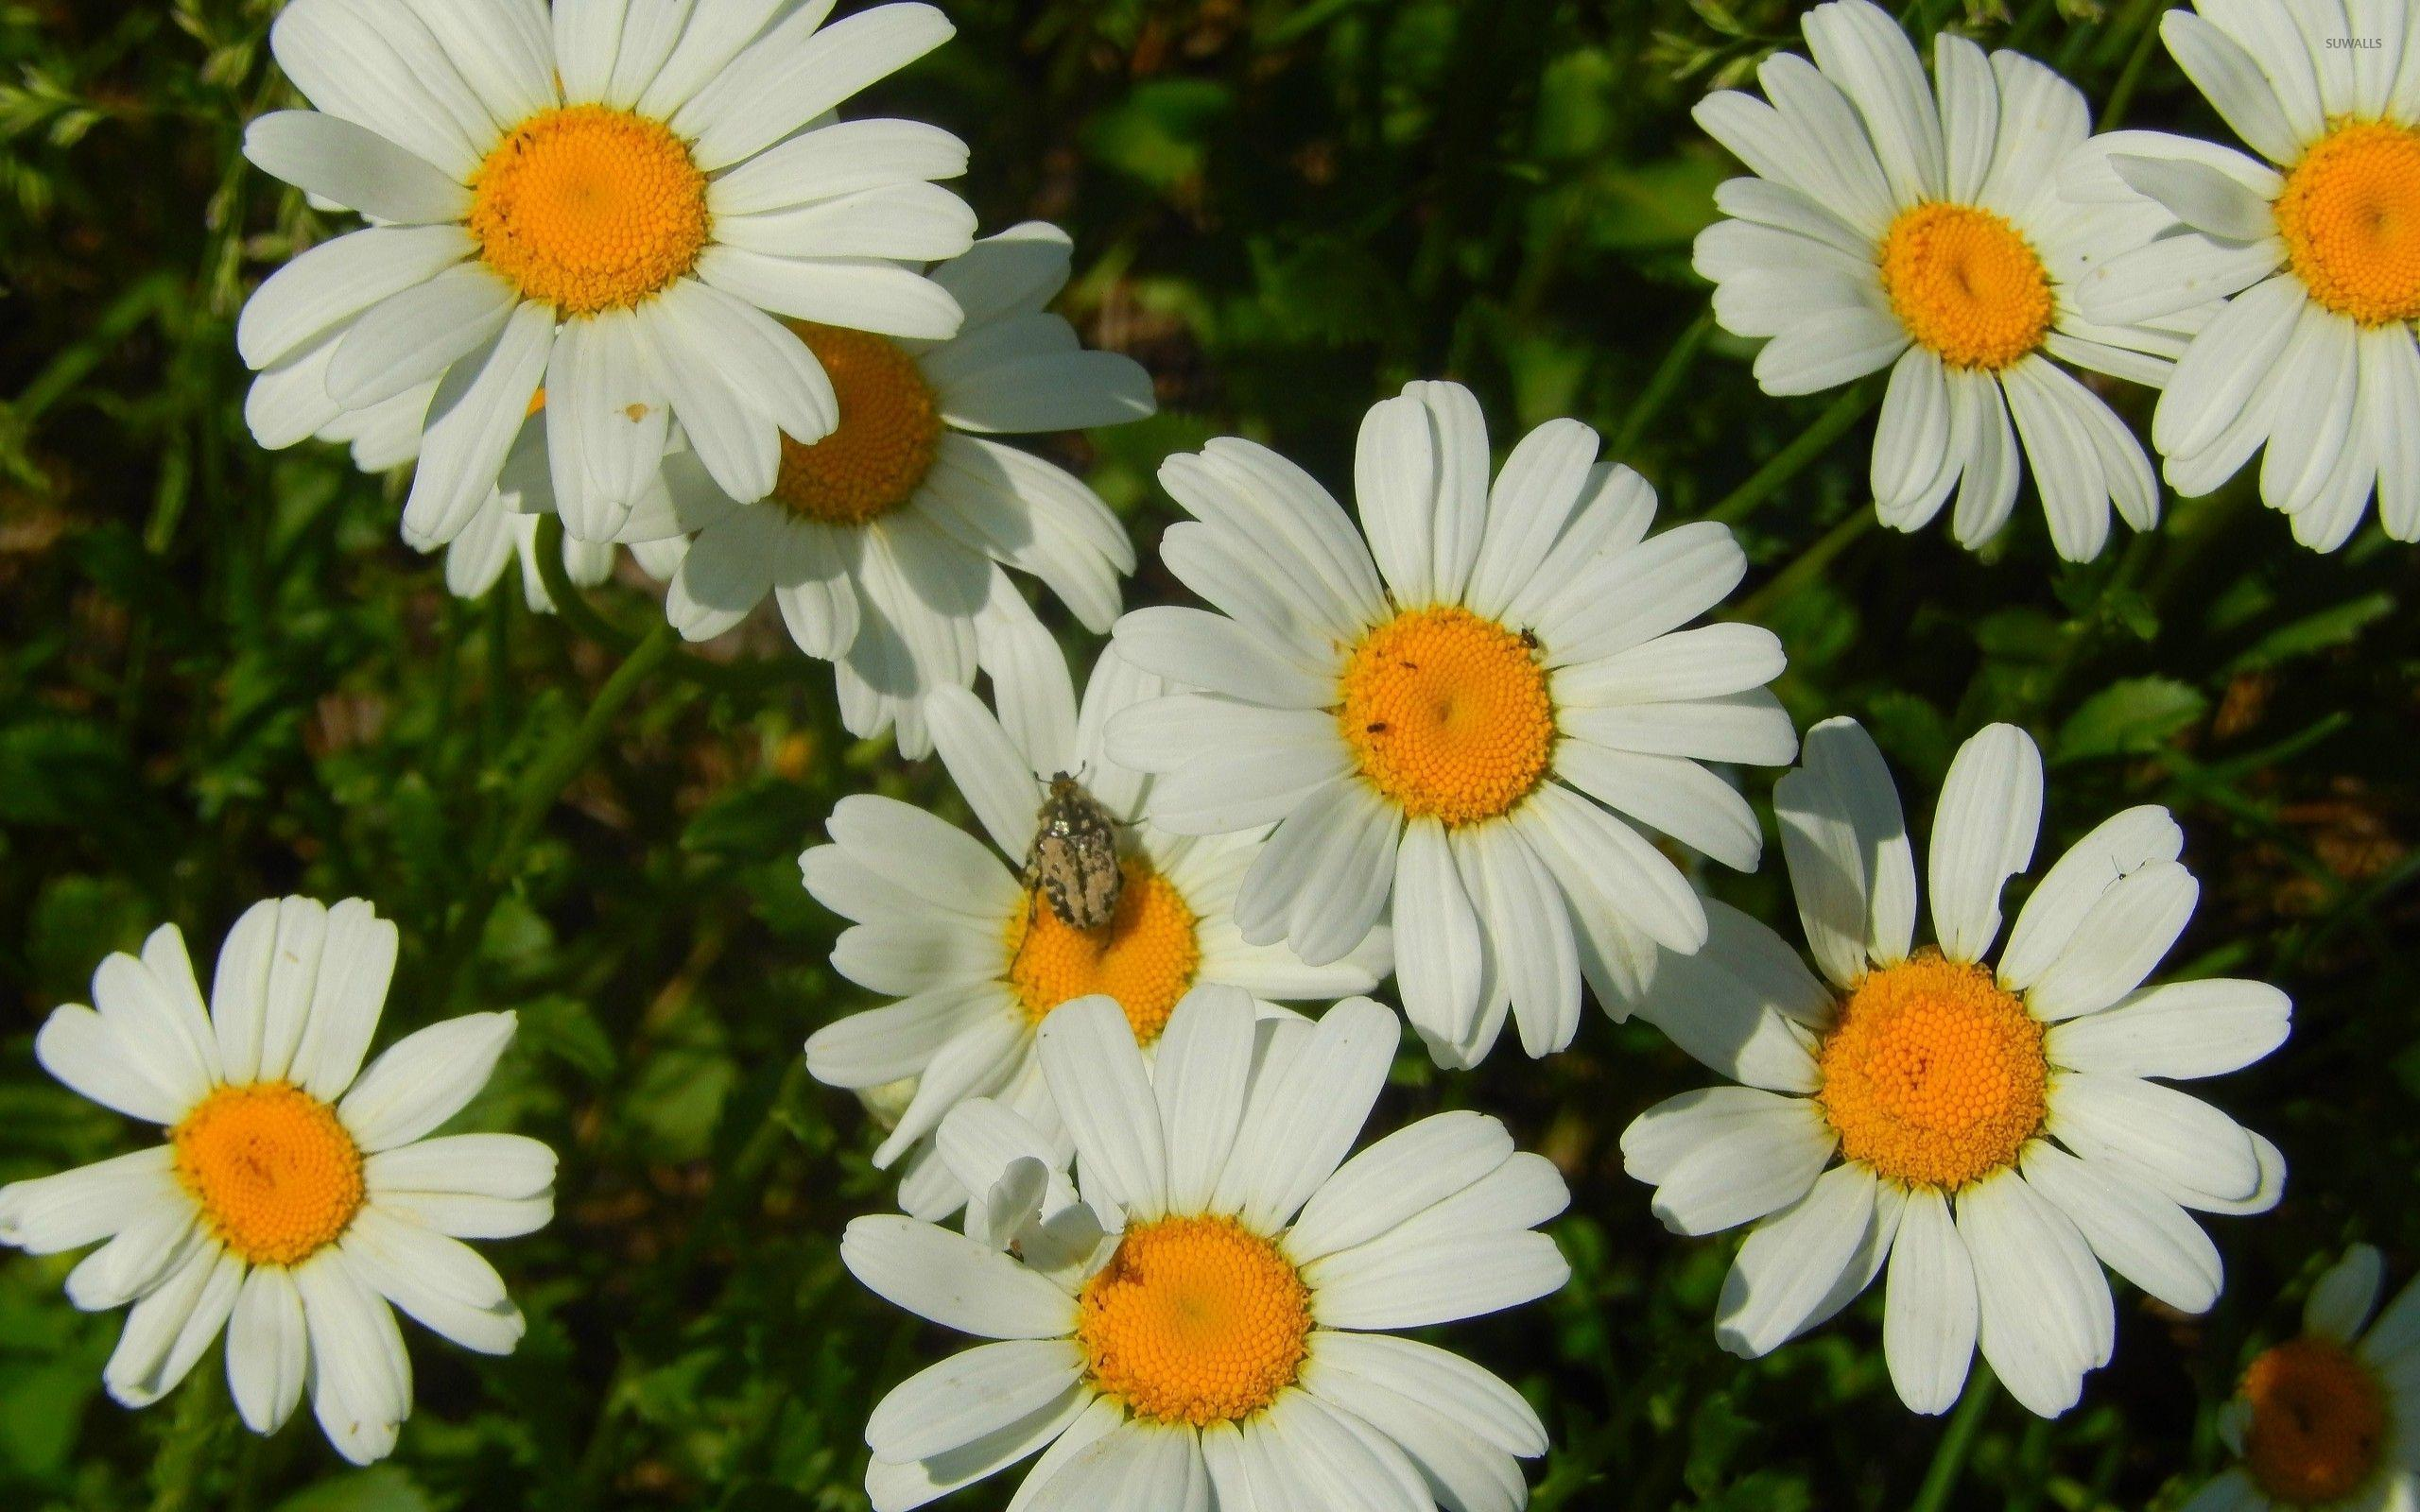 daisy flowers images